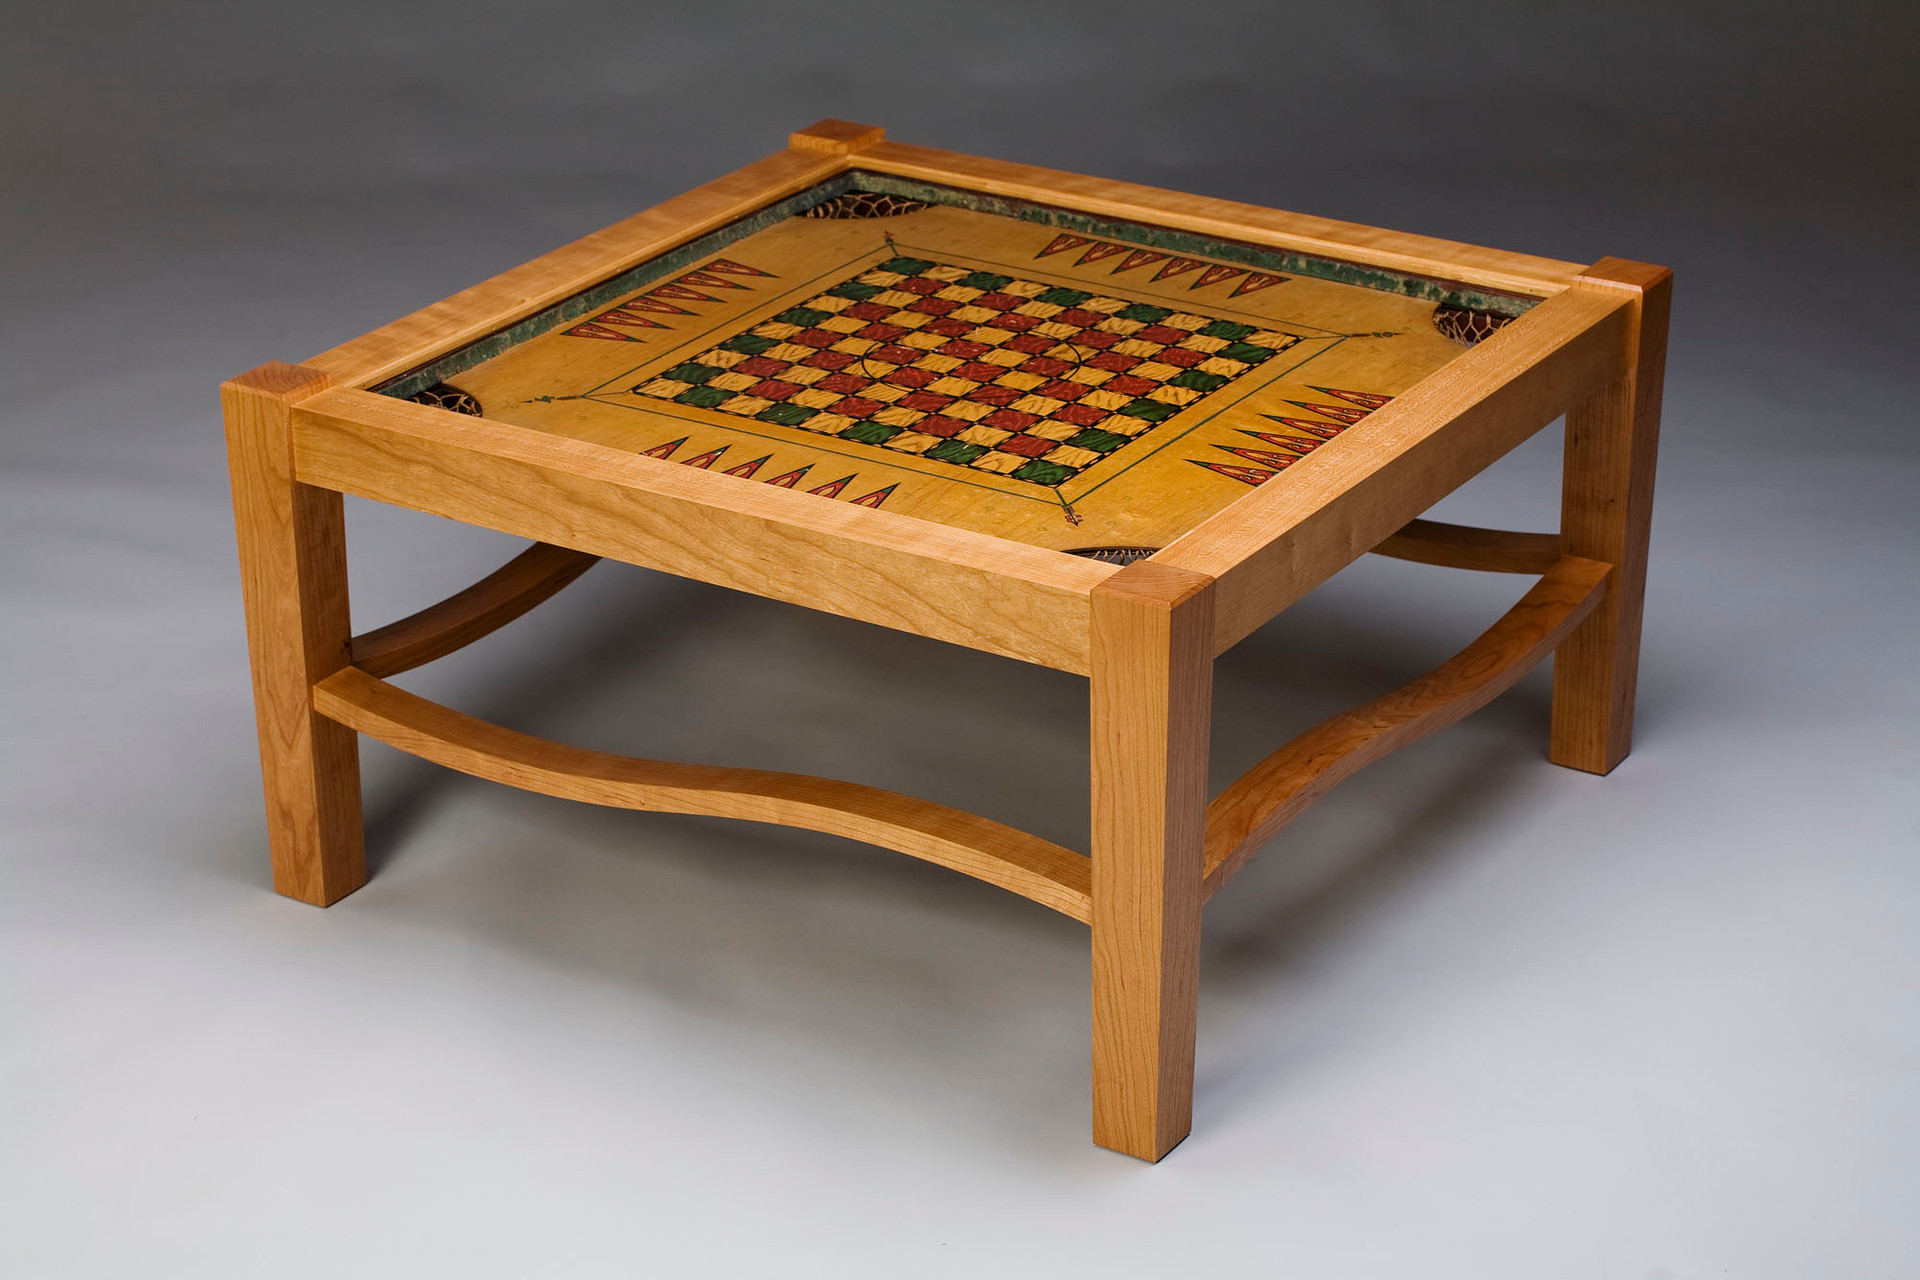 wix_carrom_game_table 2.jpg